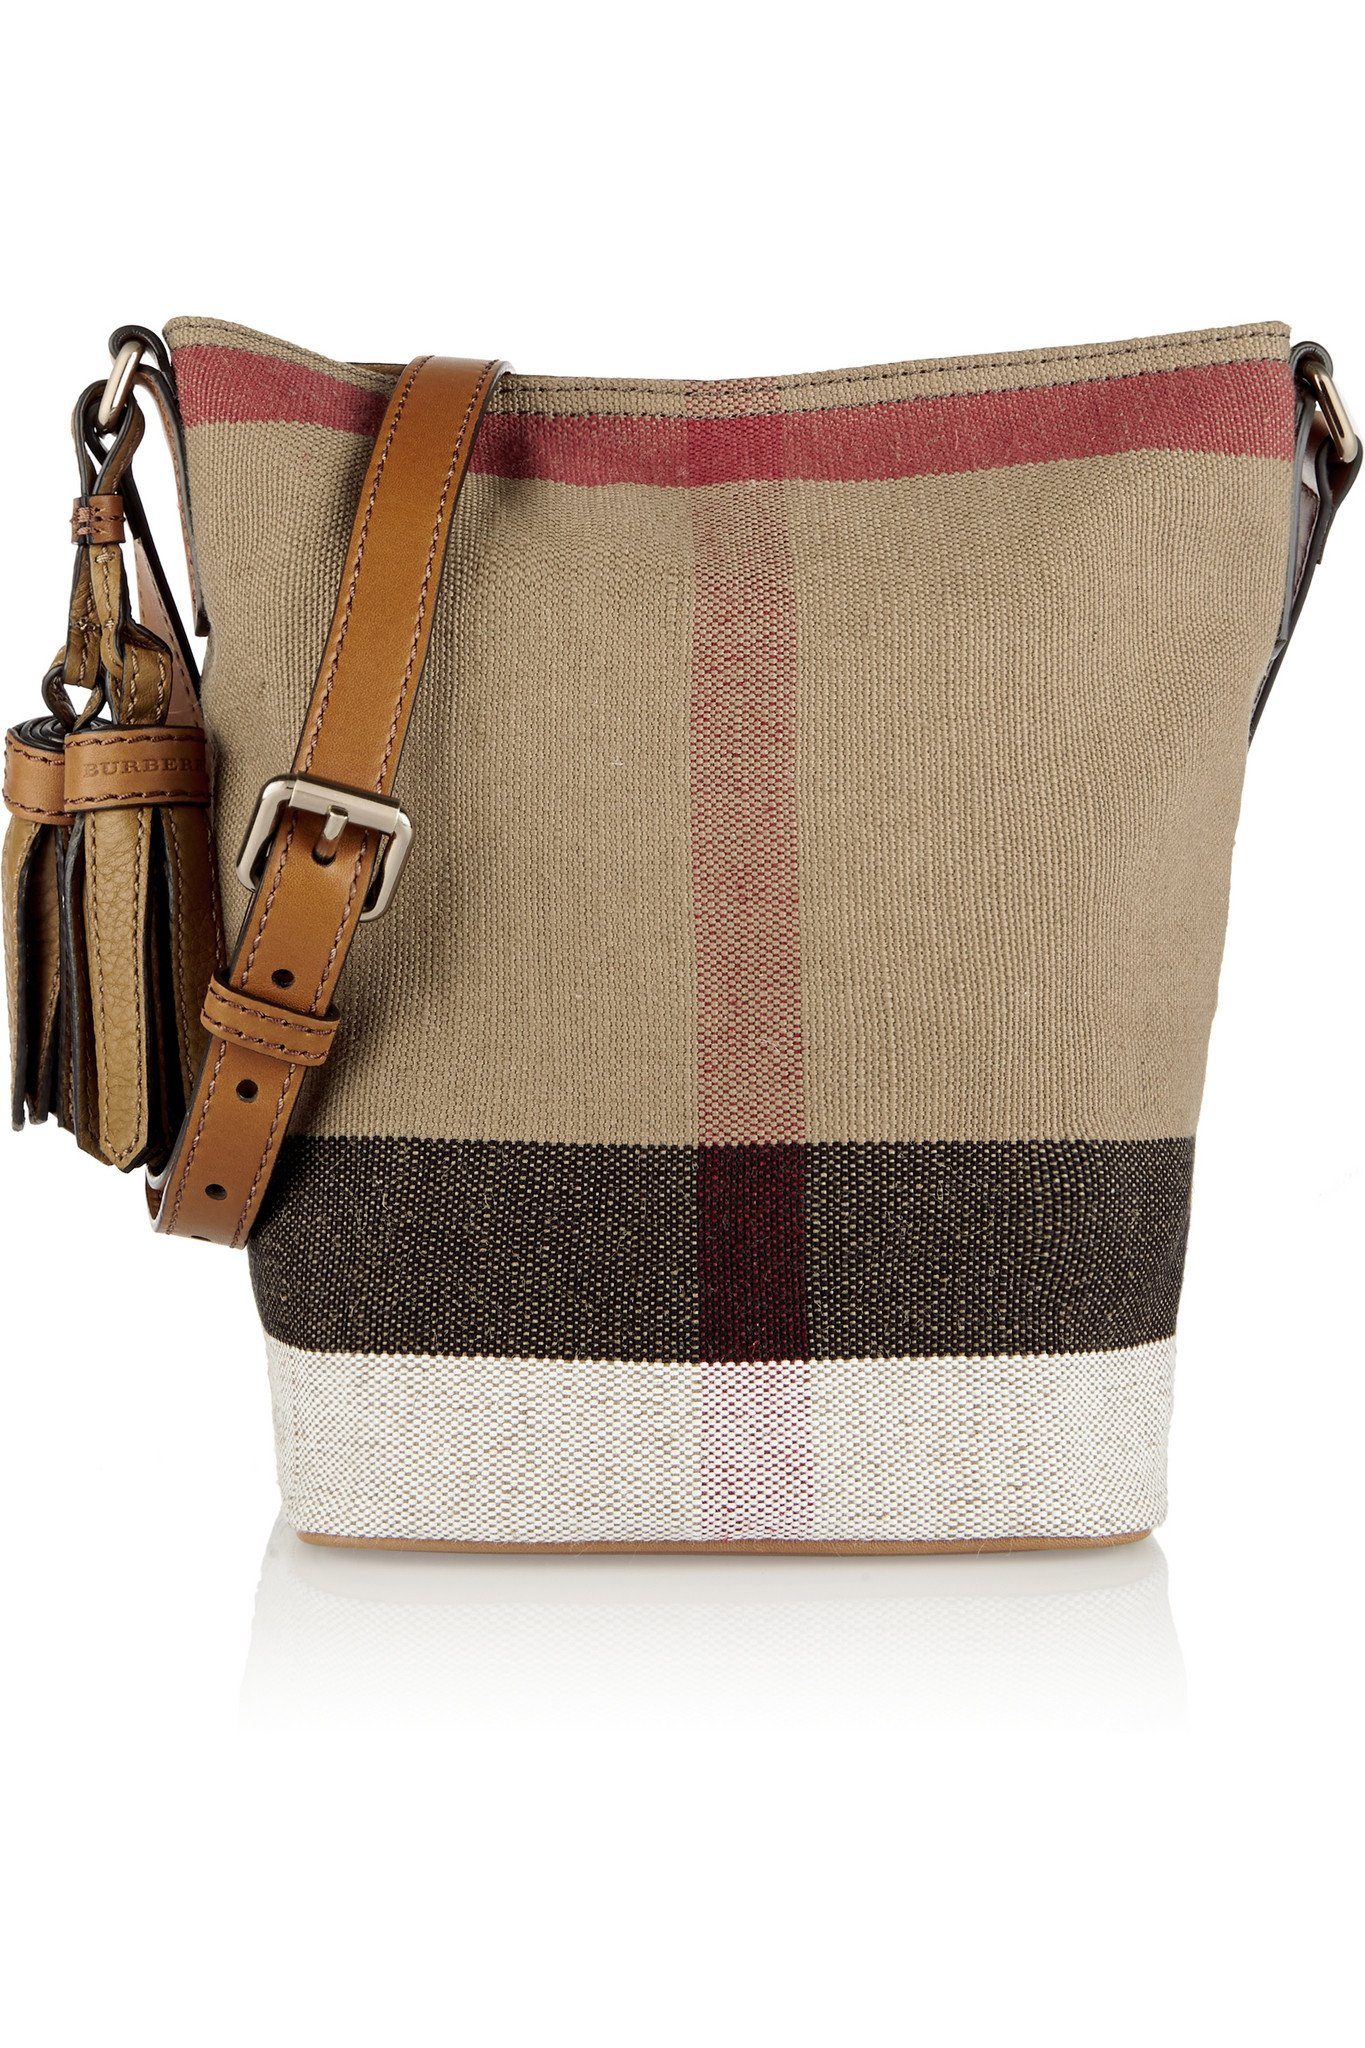 Burberry Mini Leather-trimmed Checked Canvas Shoulder Bag in Brown ... 4a9ba72d0882a